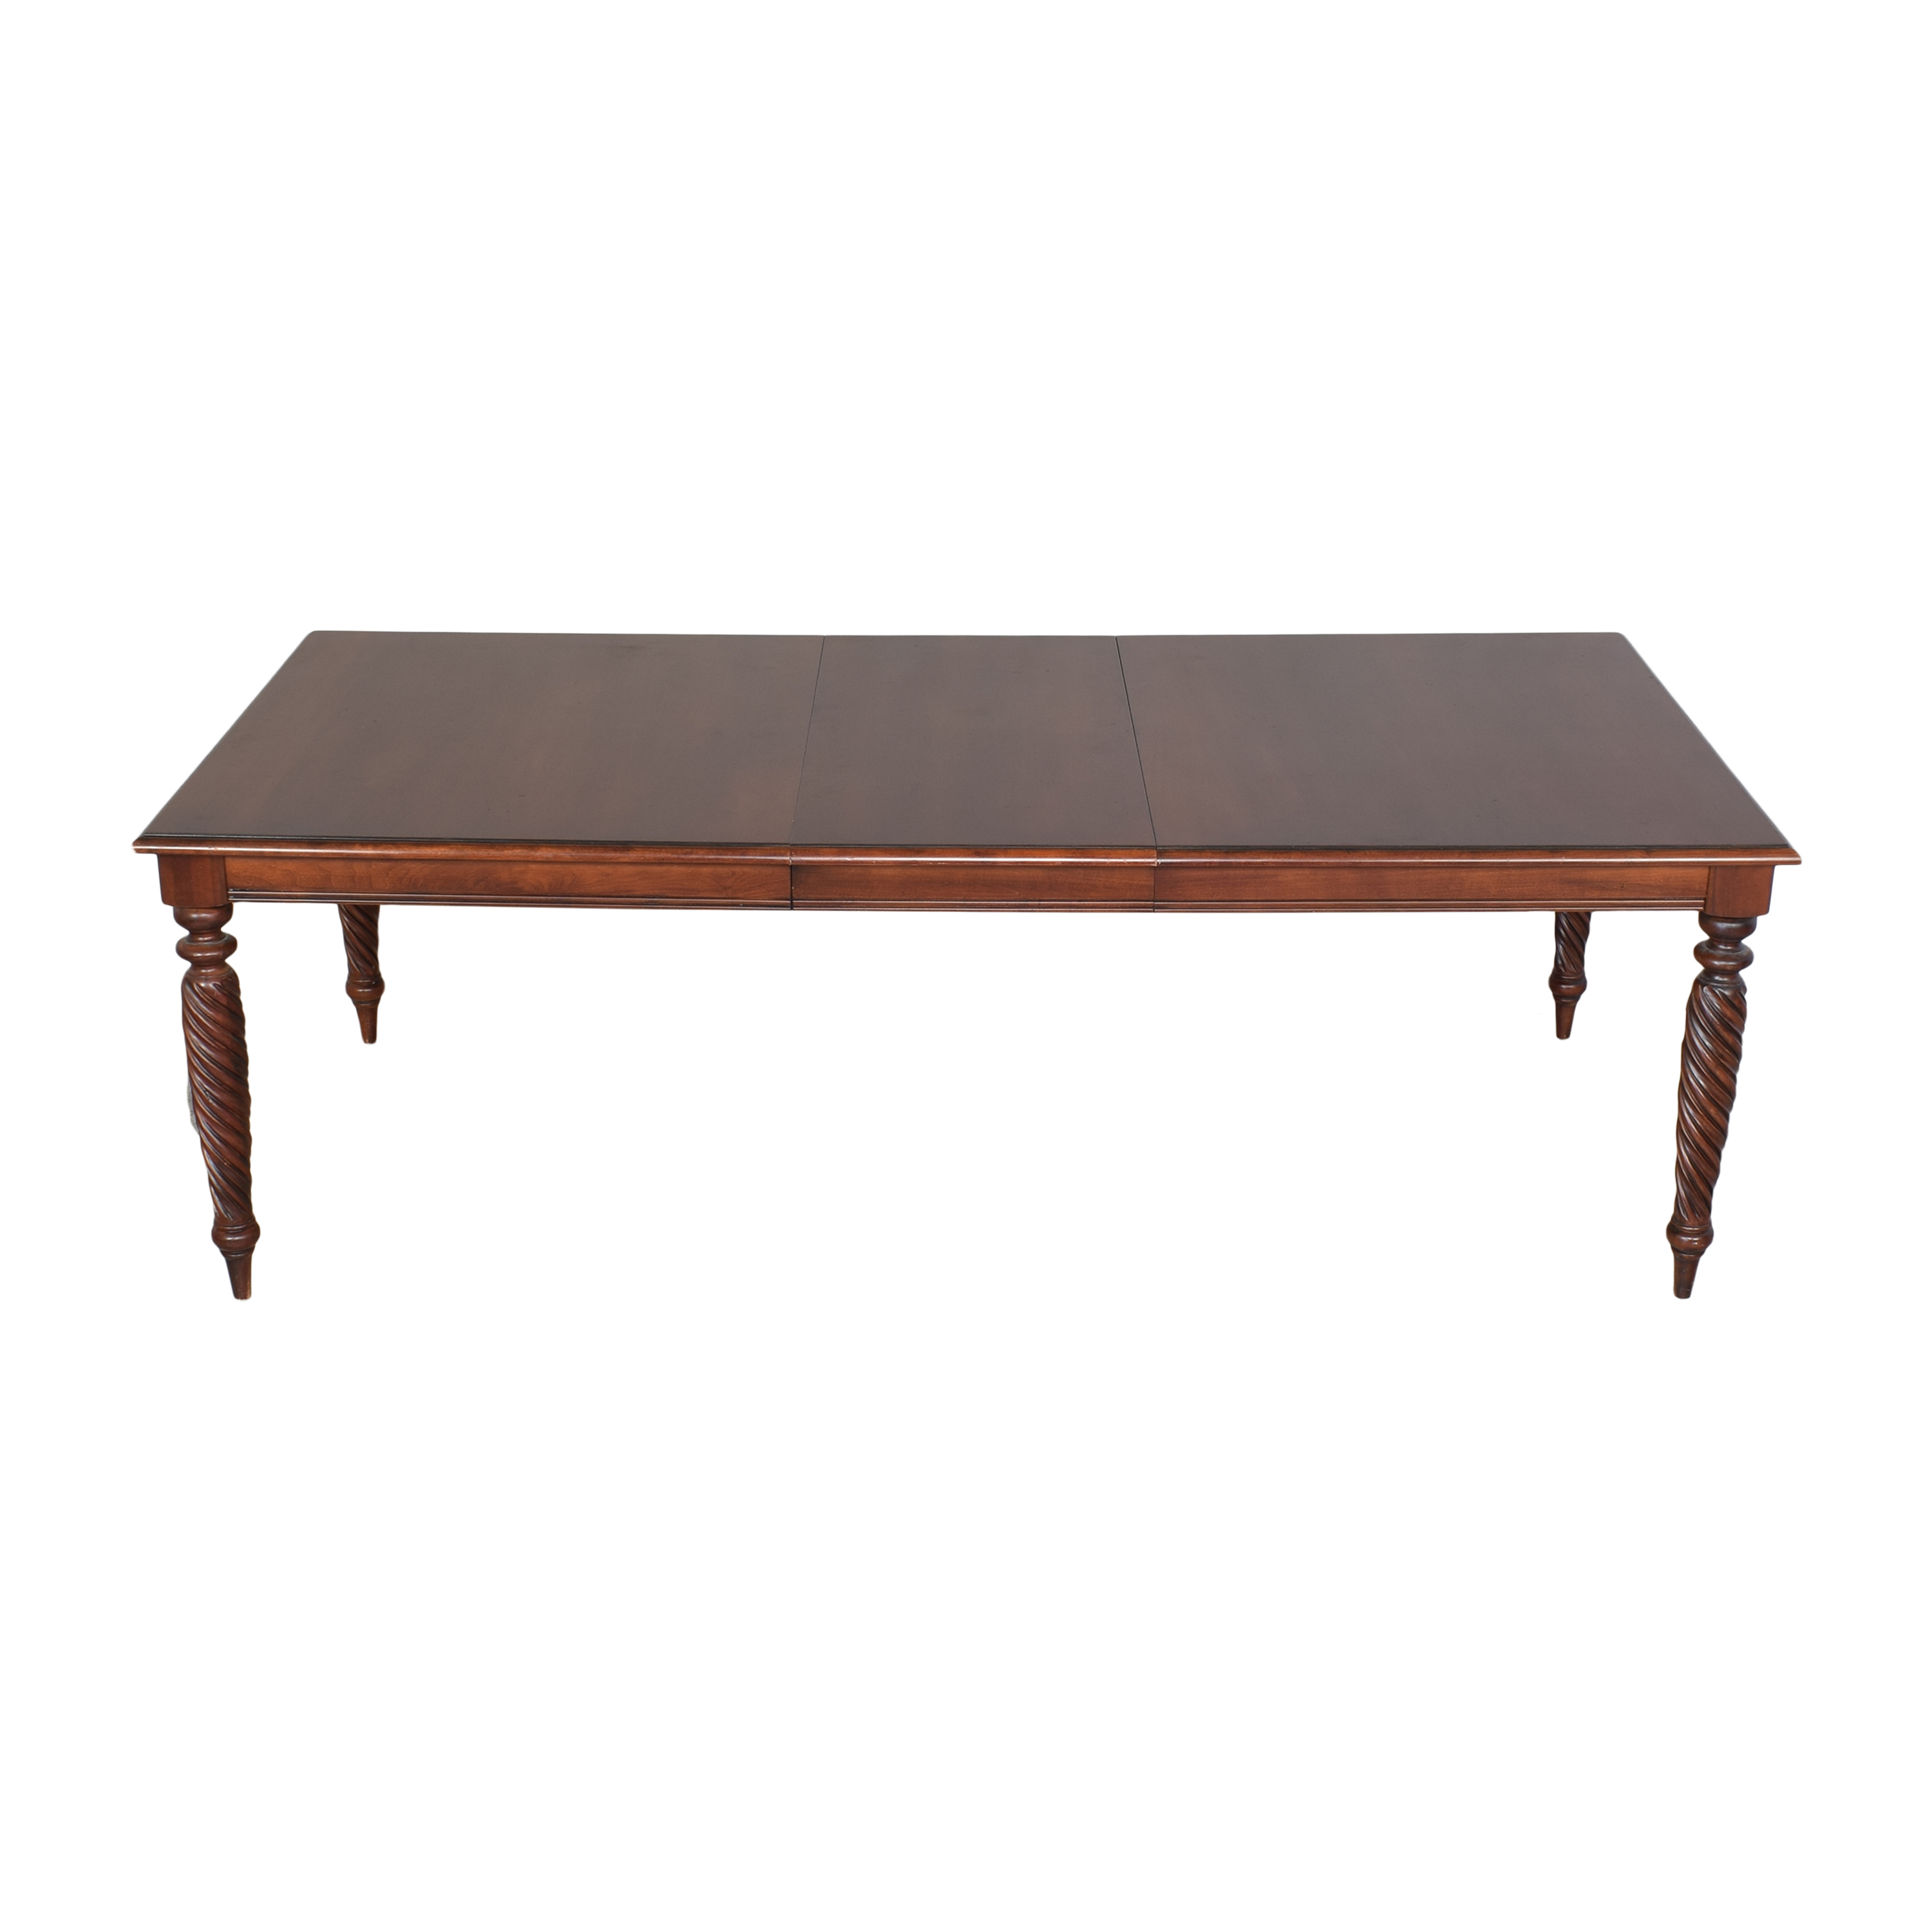 Ethan Allen Ethan Allen British Classics Dining Table nyc